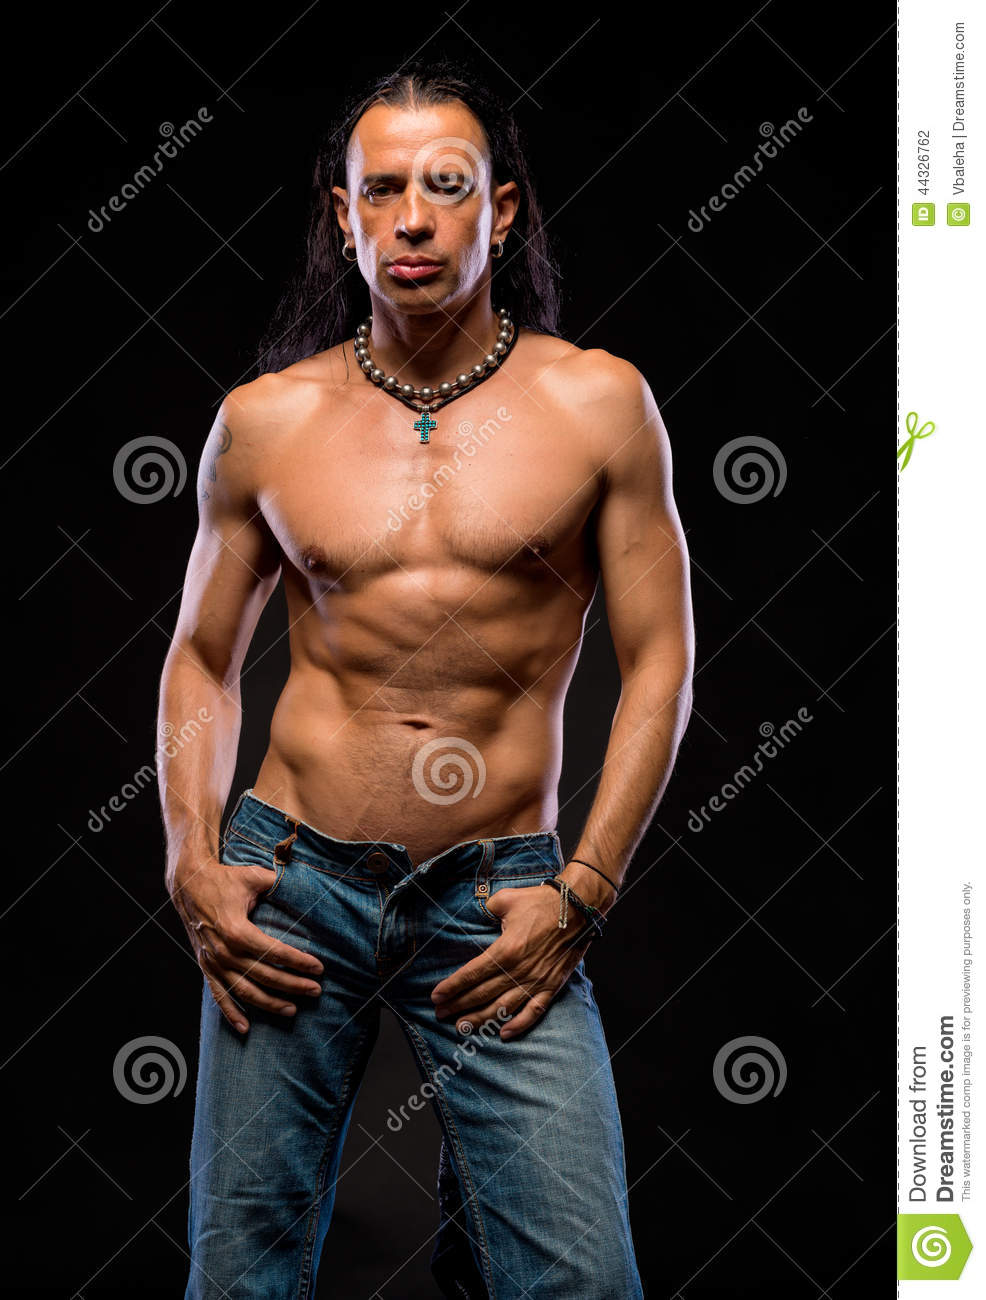 Portrait Of Handsome Man With Long Hair, Torso Naked Stock